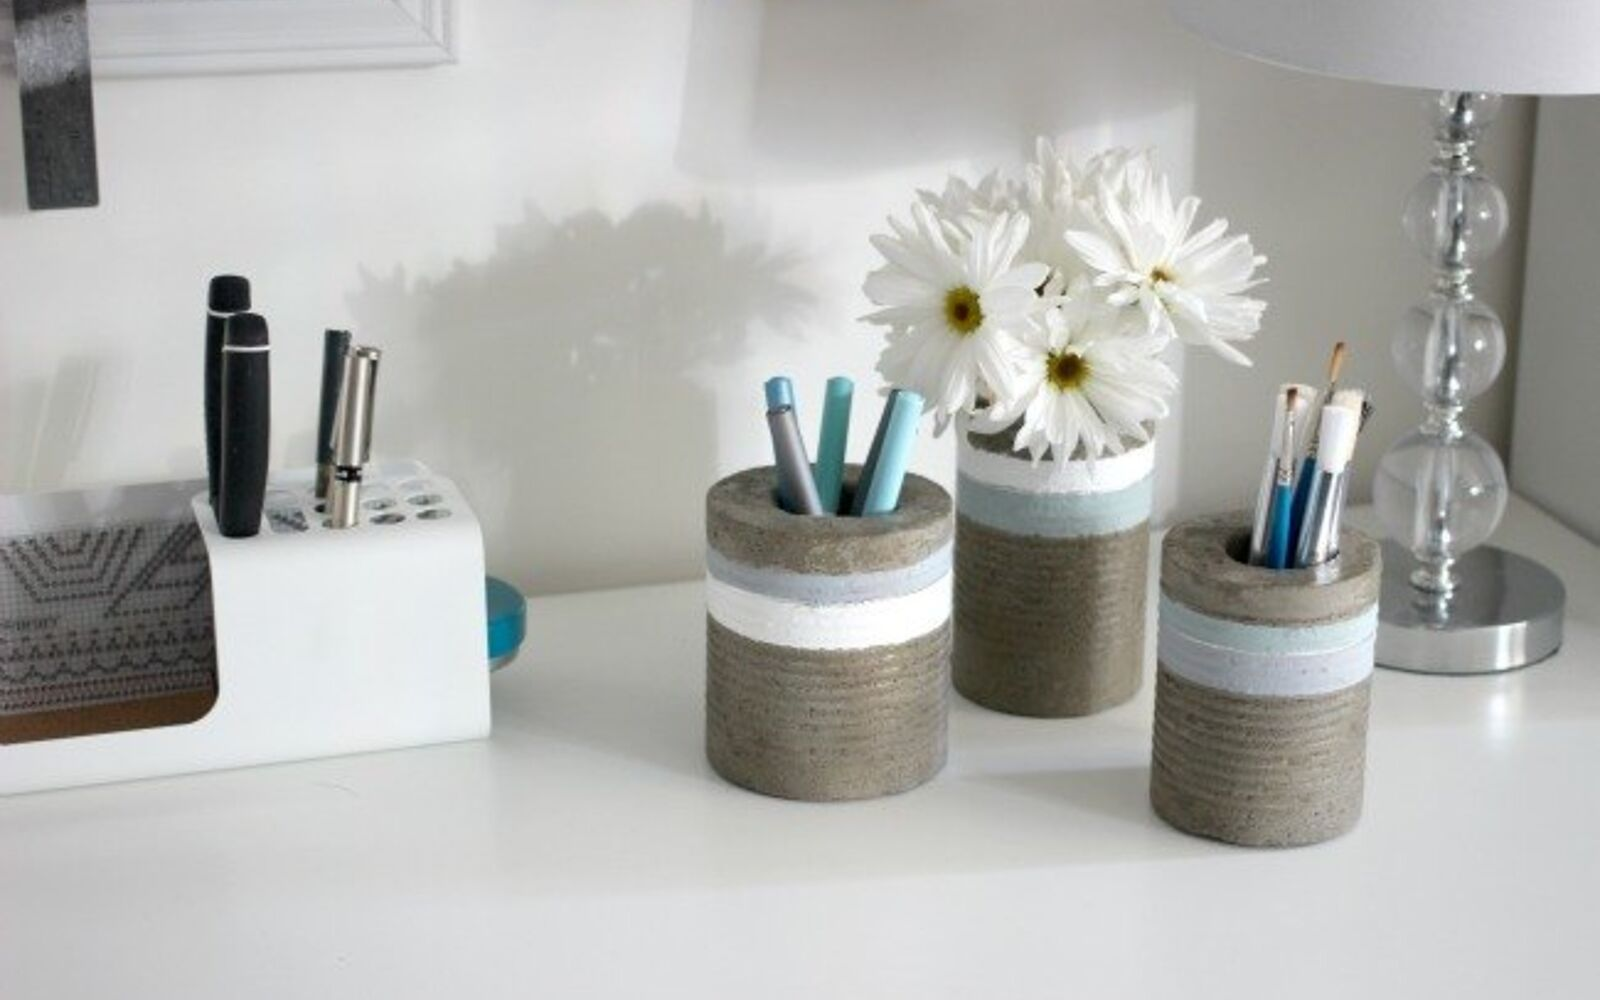 s 15 incredible vases you can make for your bestie on a budget, Mix Cement For A Concrete Vase